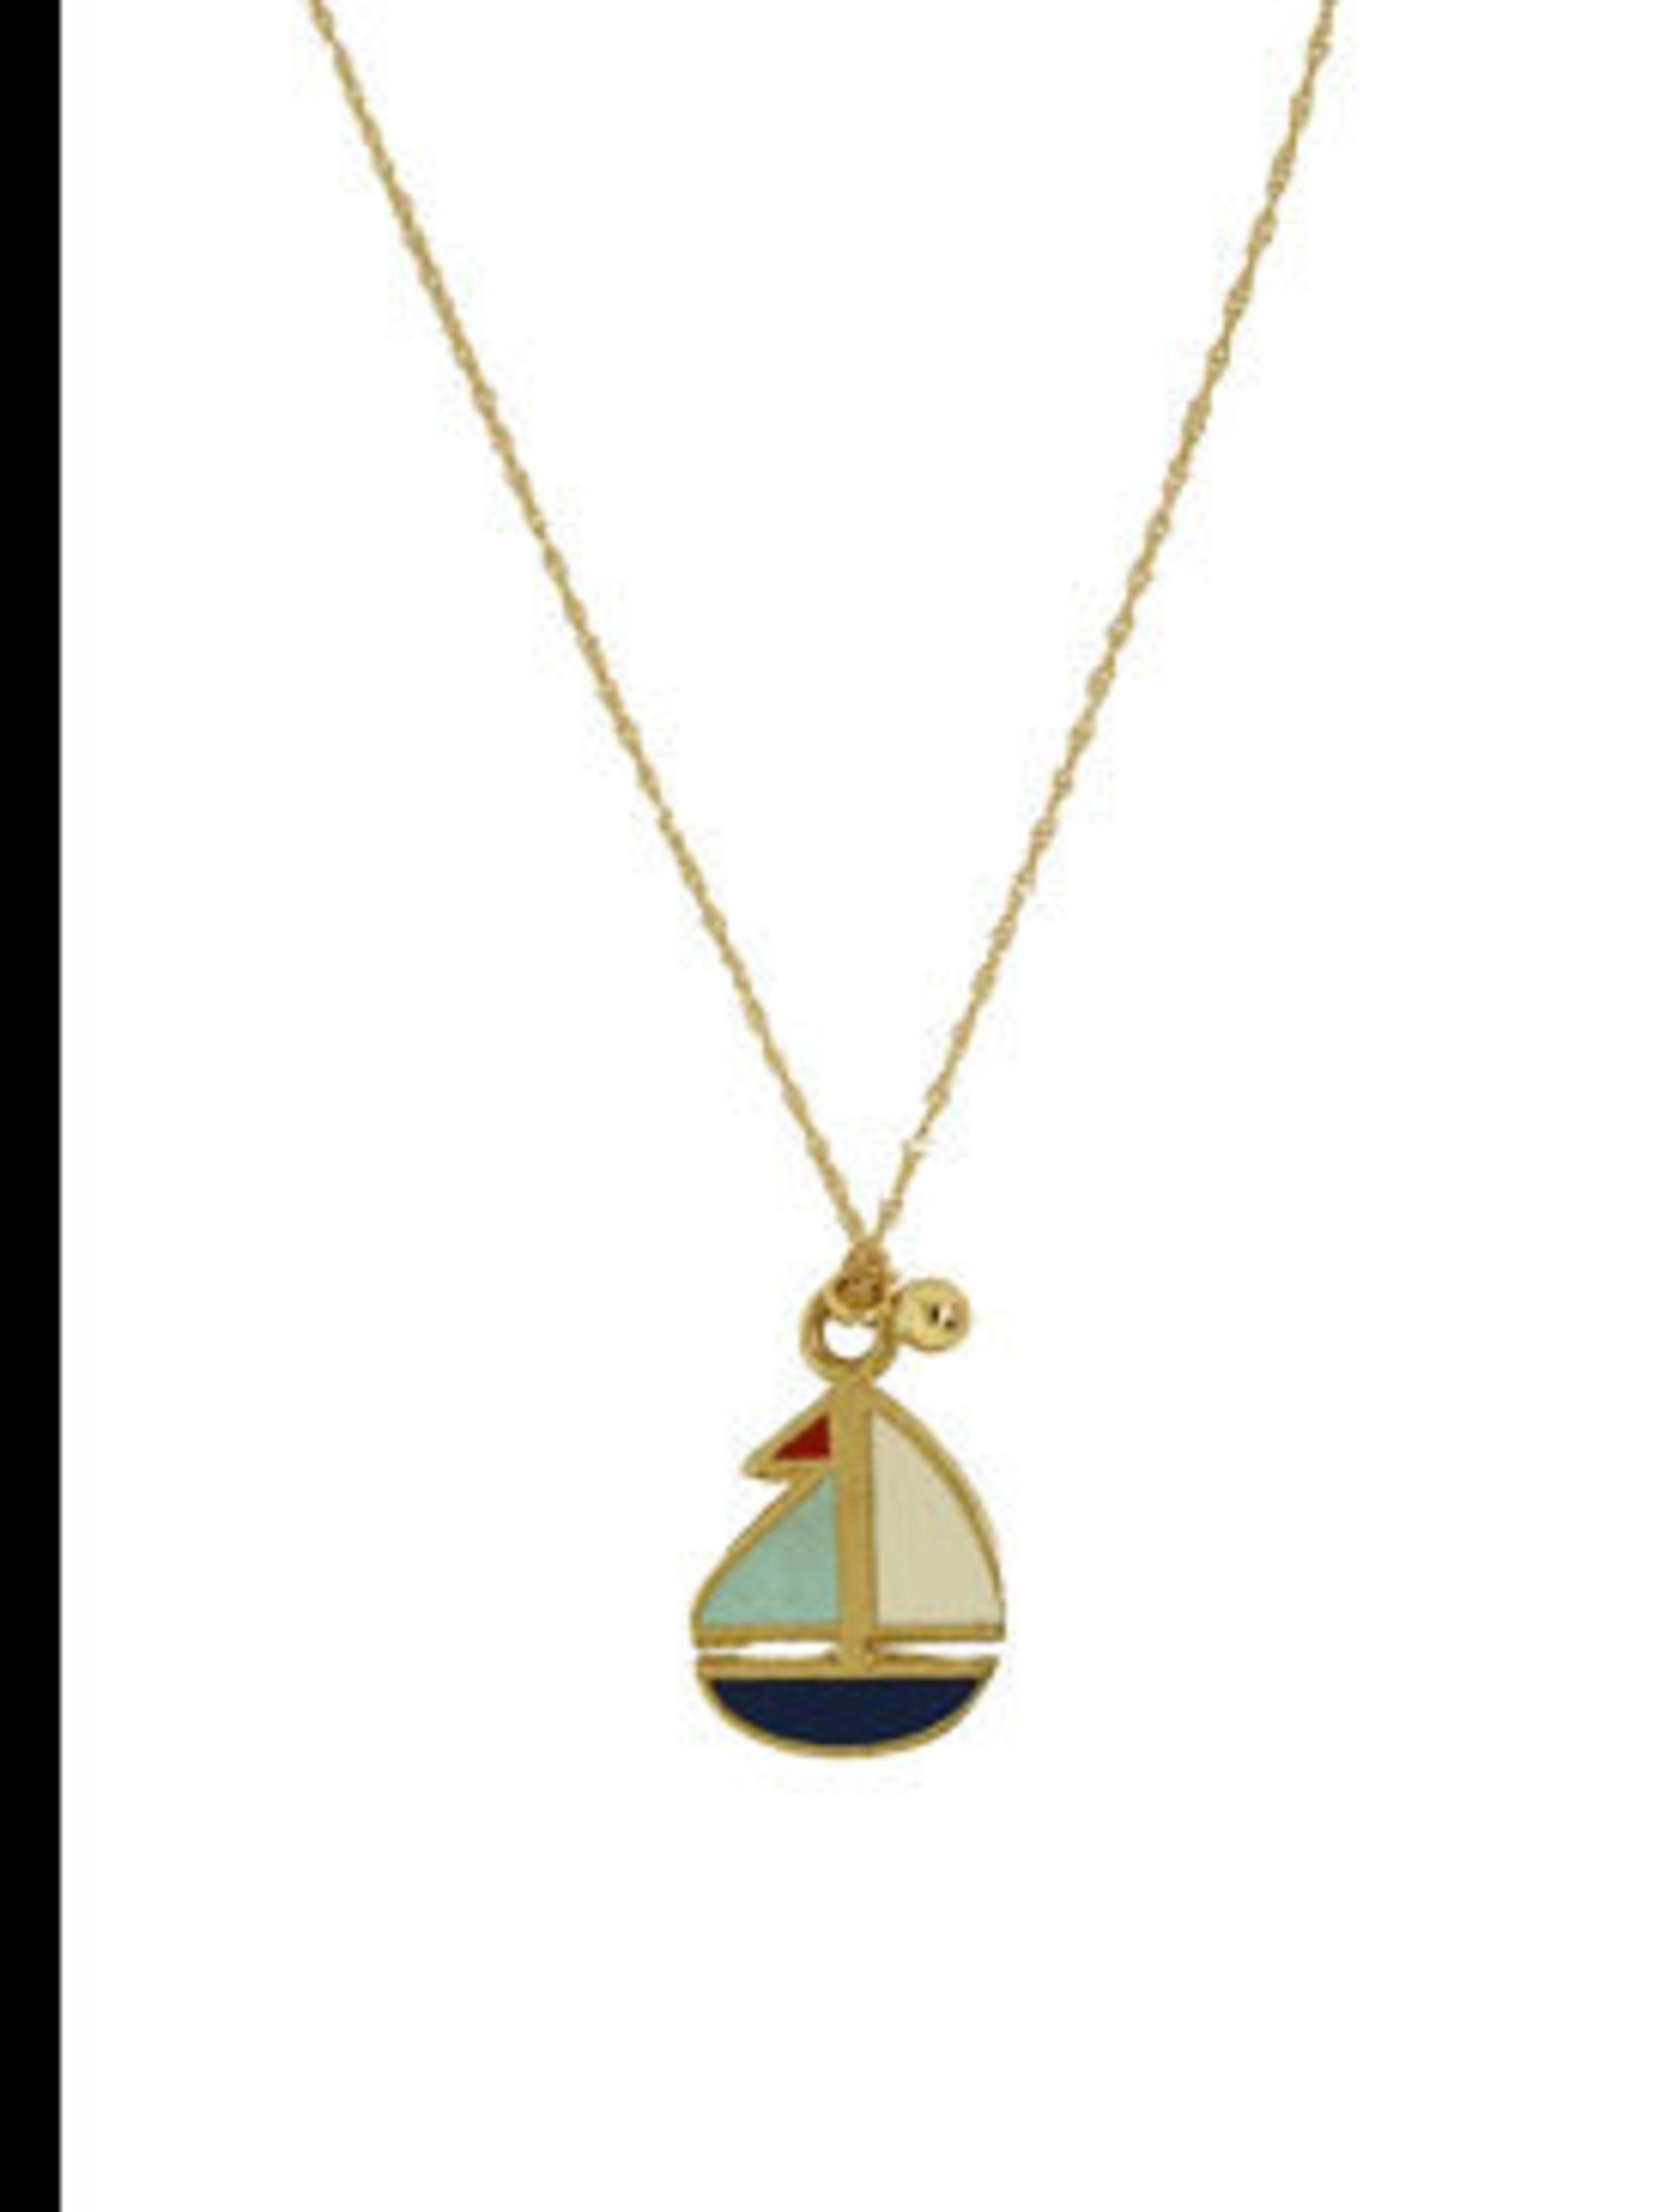 "<p>Boat pendant necklace, £180, by Ginette NY at <a href=""http://www.kabiri.co.uk/jewellery/necklaces/boat_pendant"">Kabiri</a></p>"